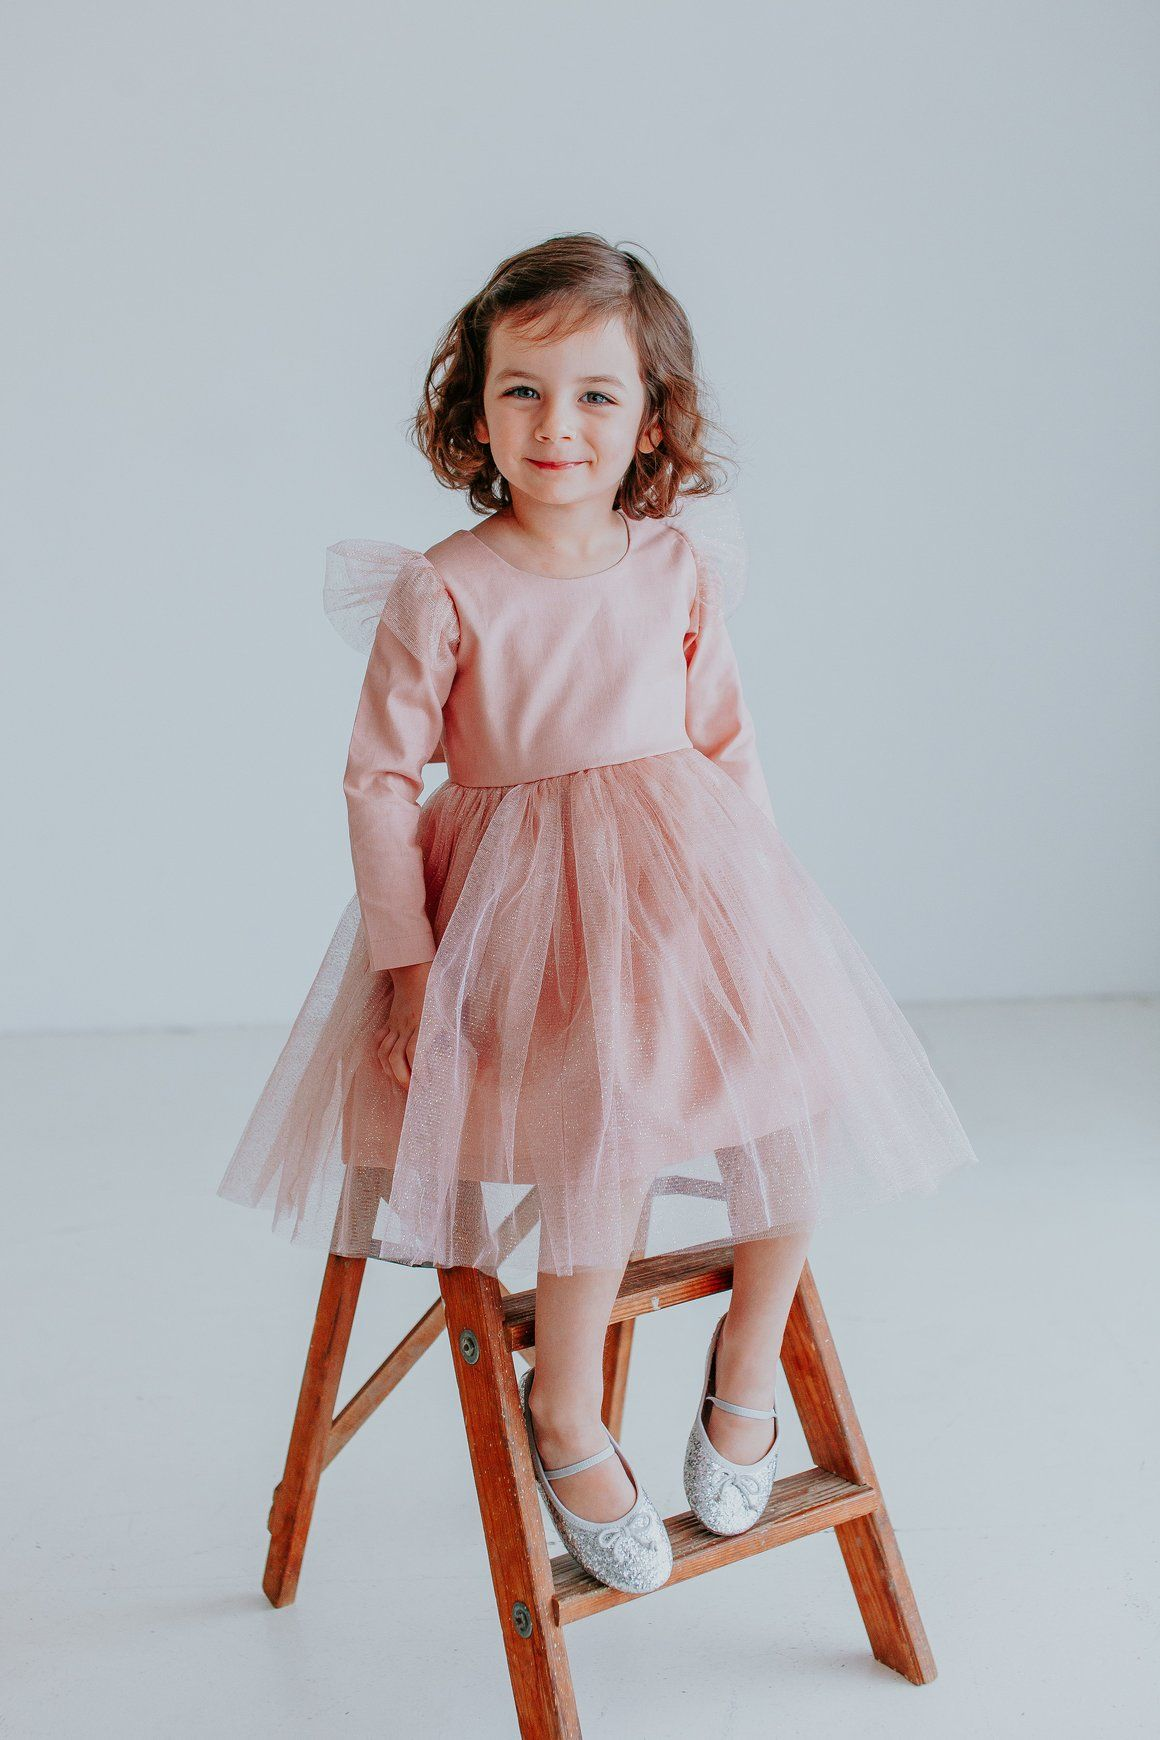 Giselle Dress - twirly pink tulle dress, the cutest party dress for girls, only from cuteheads.com